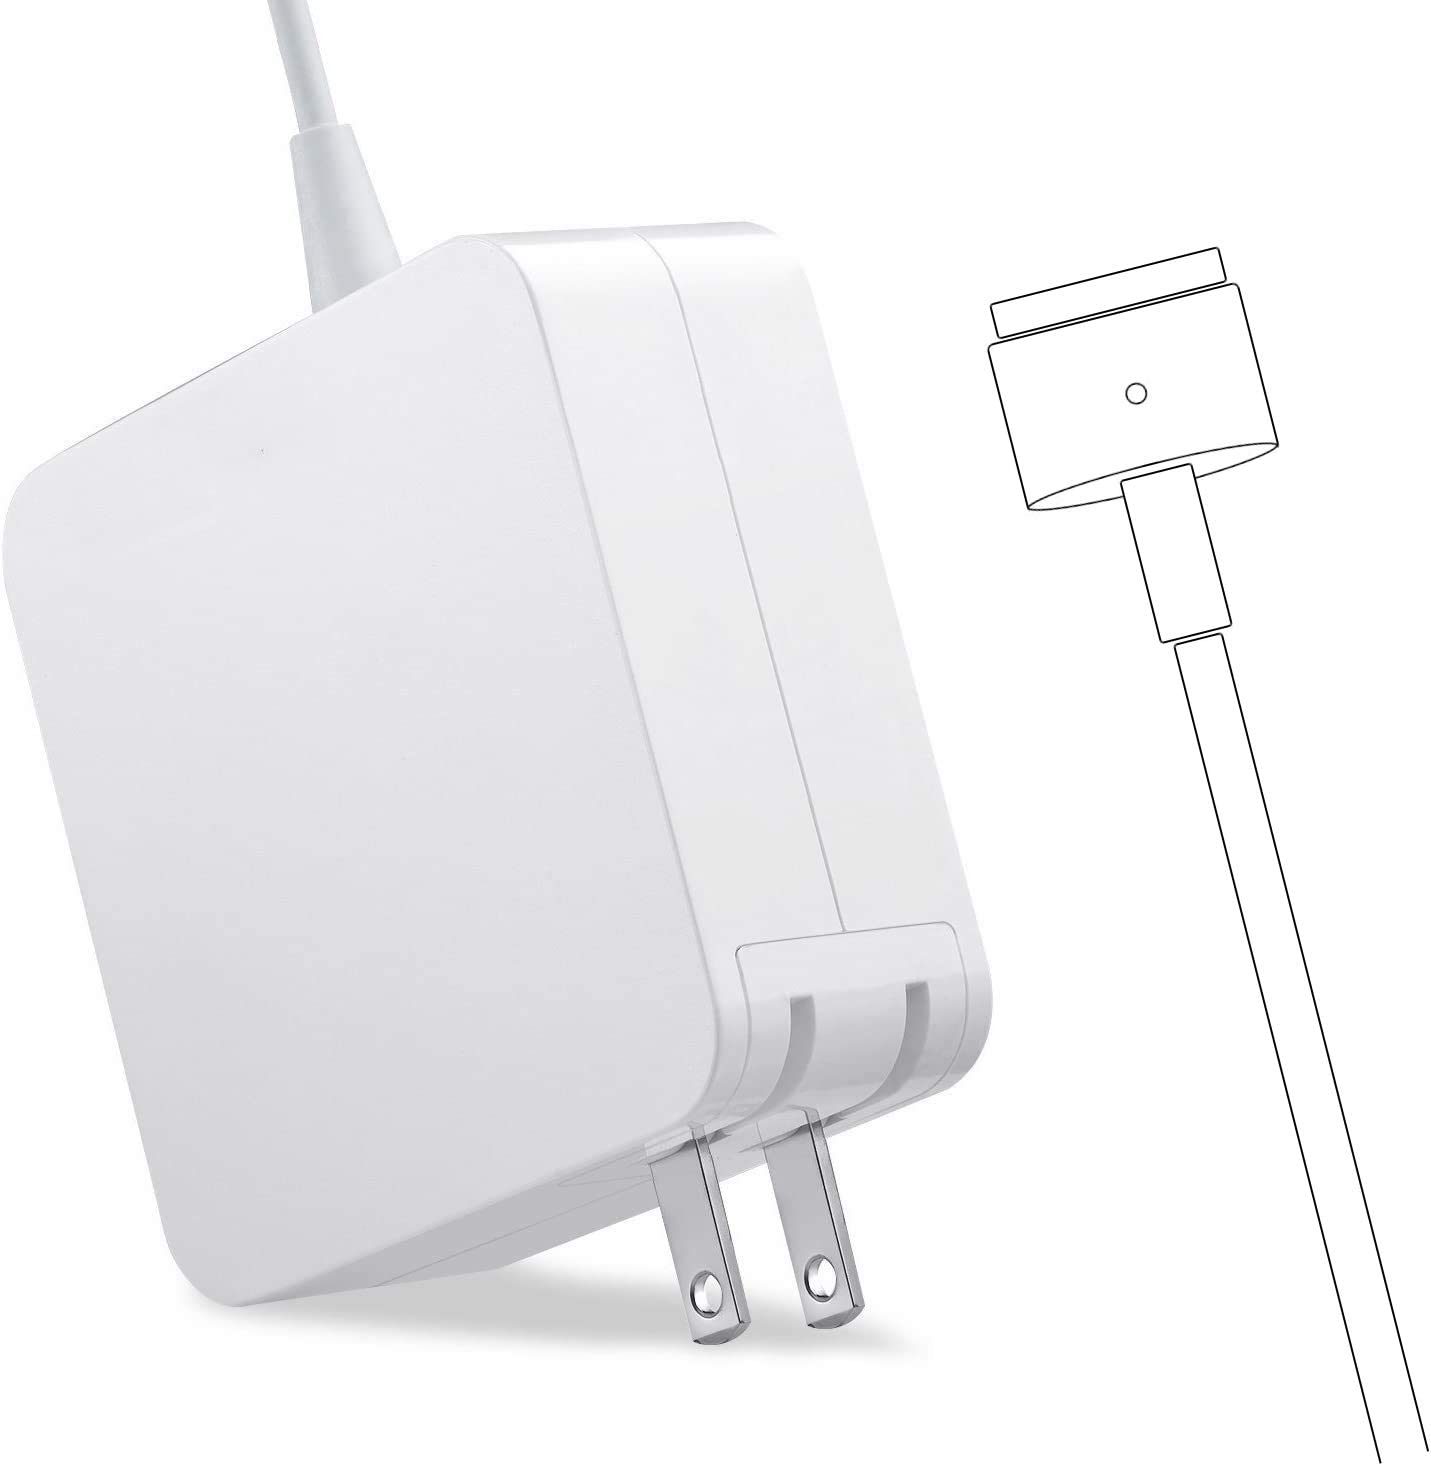 Mac Book Pro Charger, 60W T-tip Power Adapter Charger Compatible with Mac Book Charger/Mac Book Air(After Late 2012)